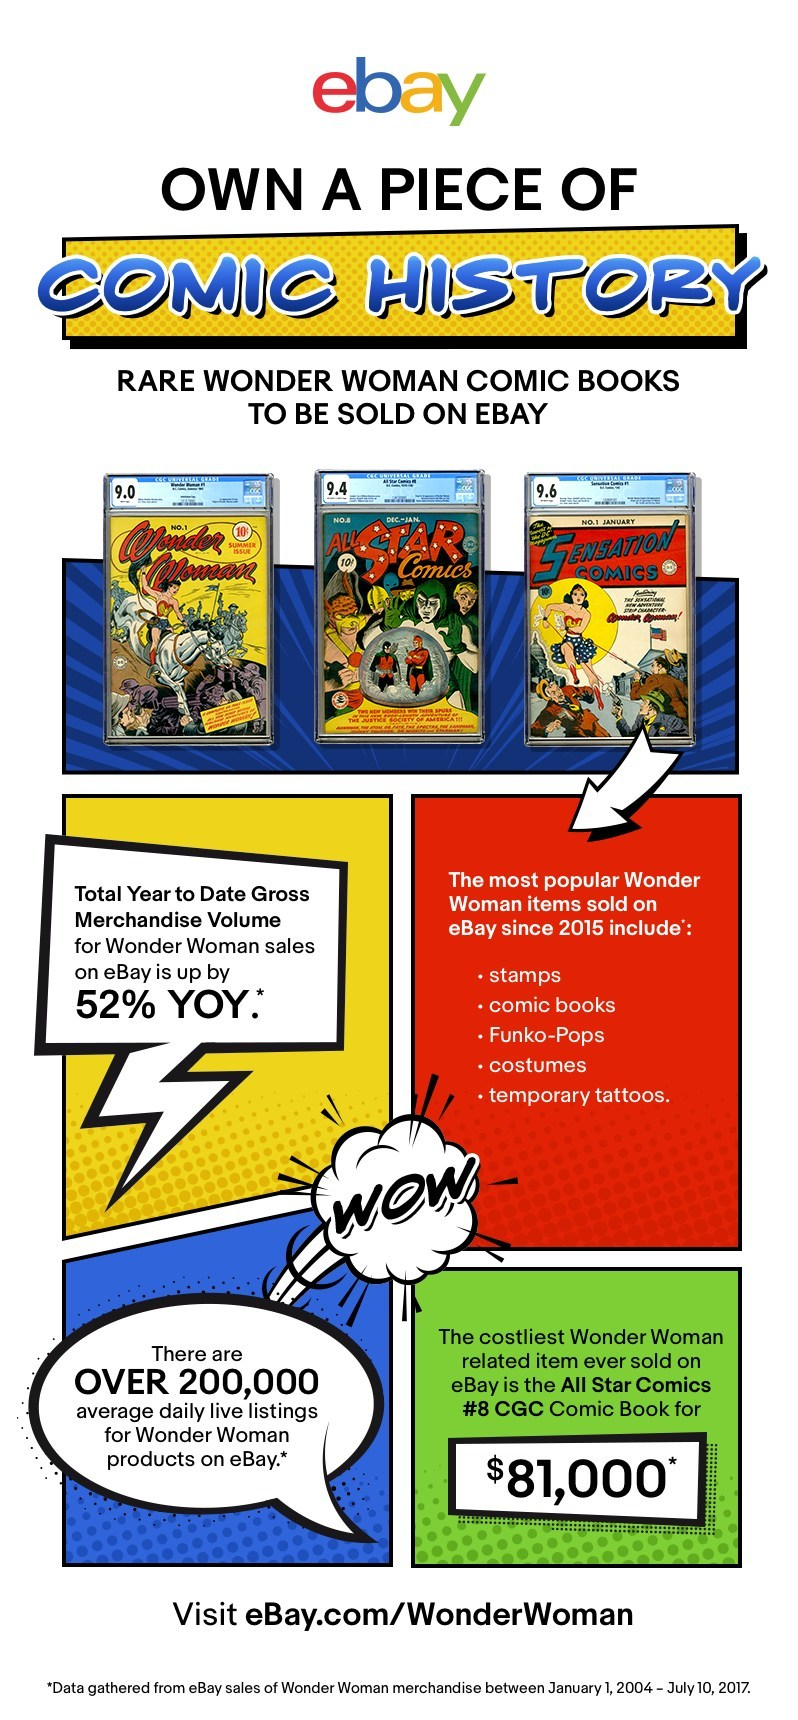 eBay & Wonder Woman by the Numbers.